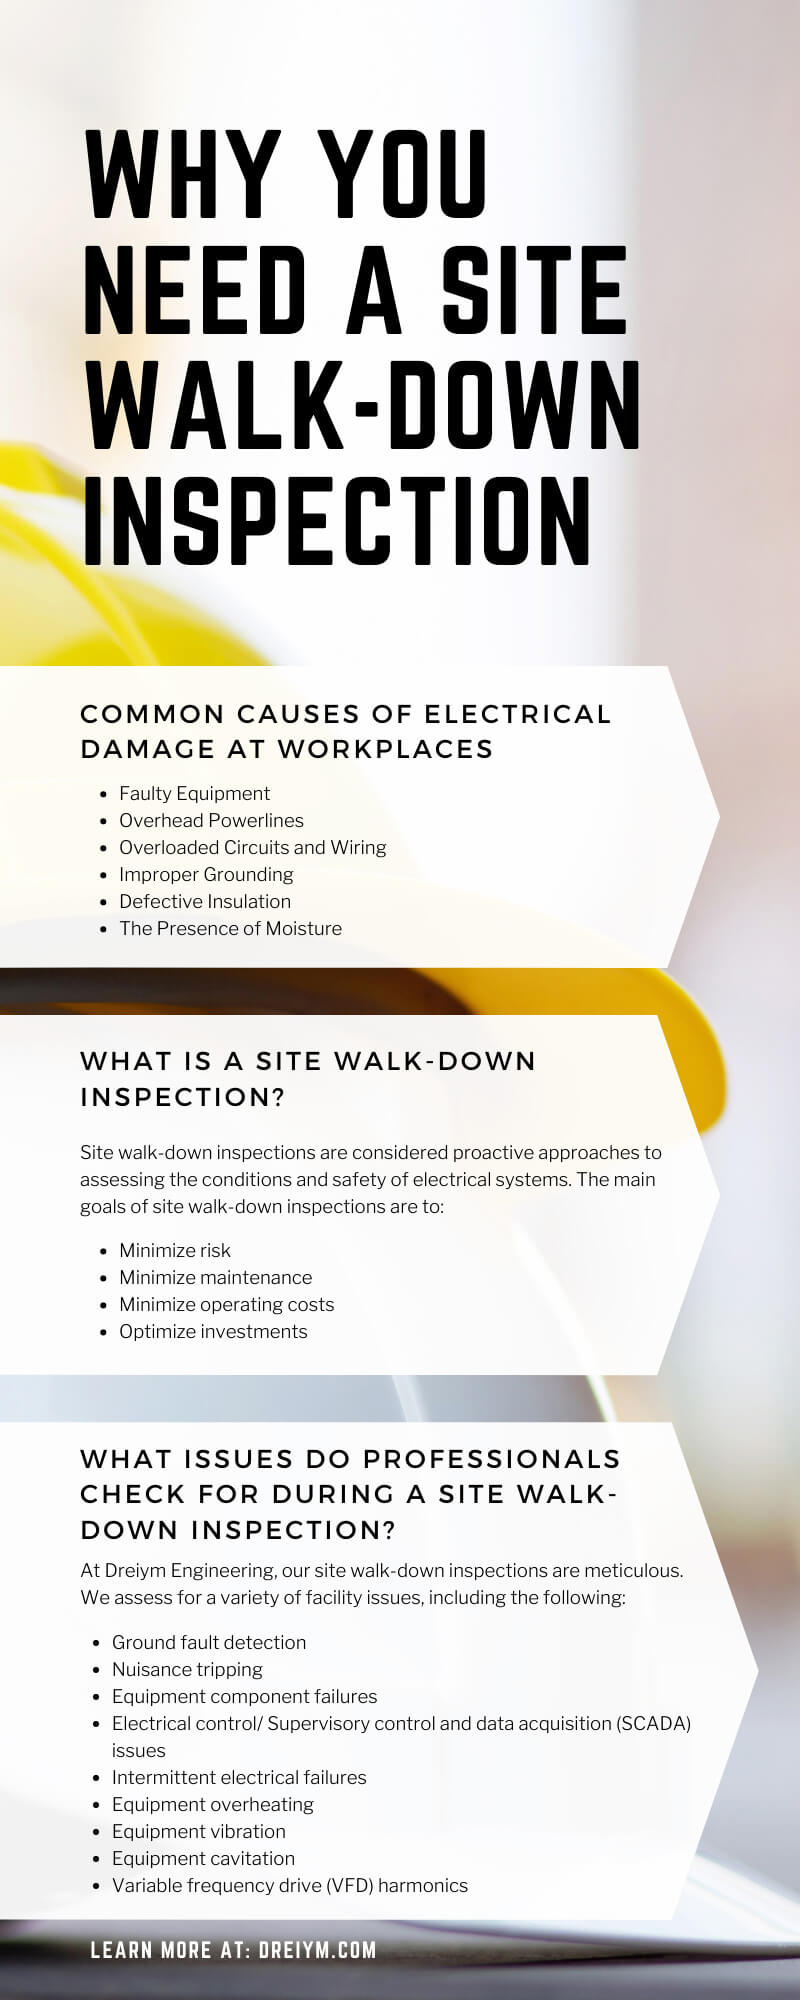 Why You Need a Site Walk-Down Inspection